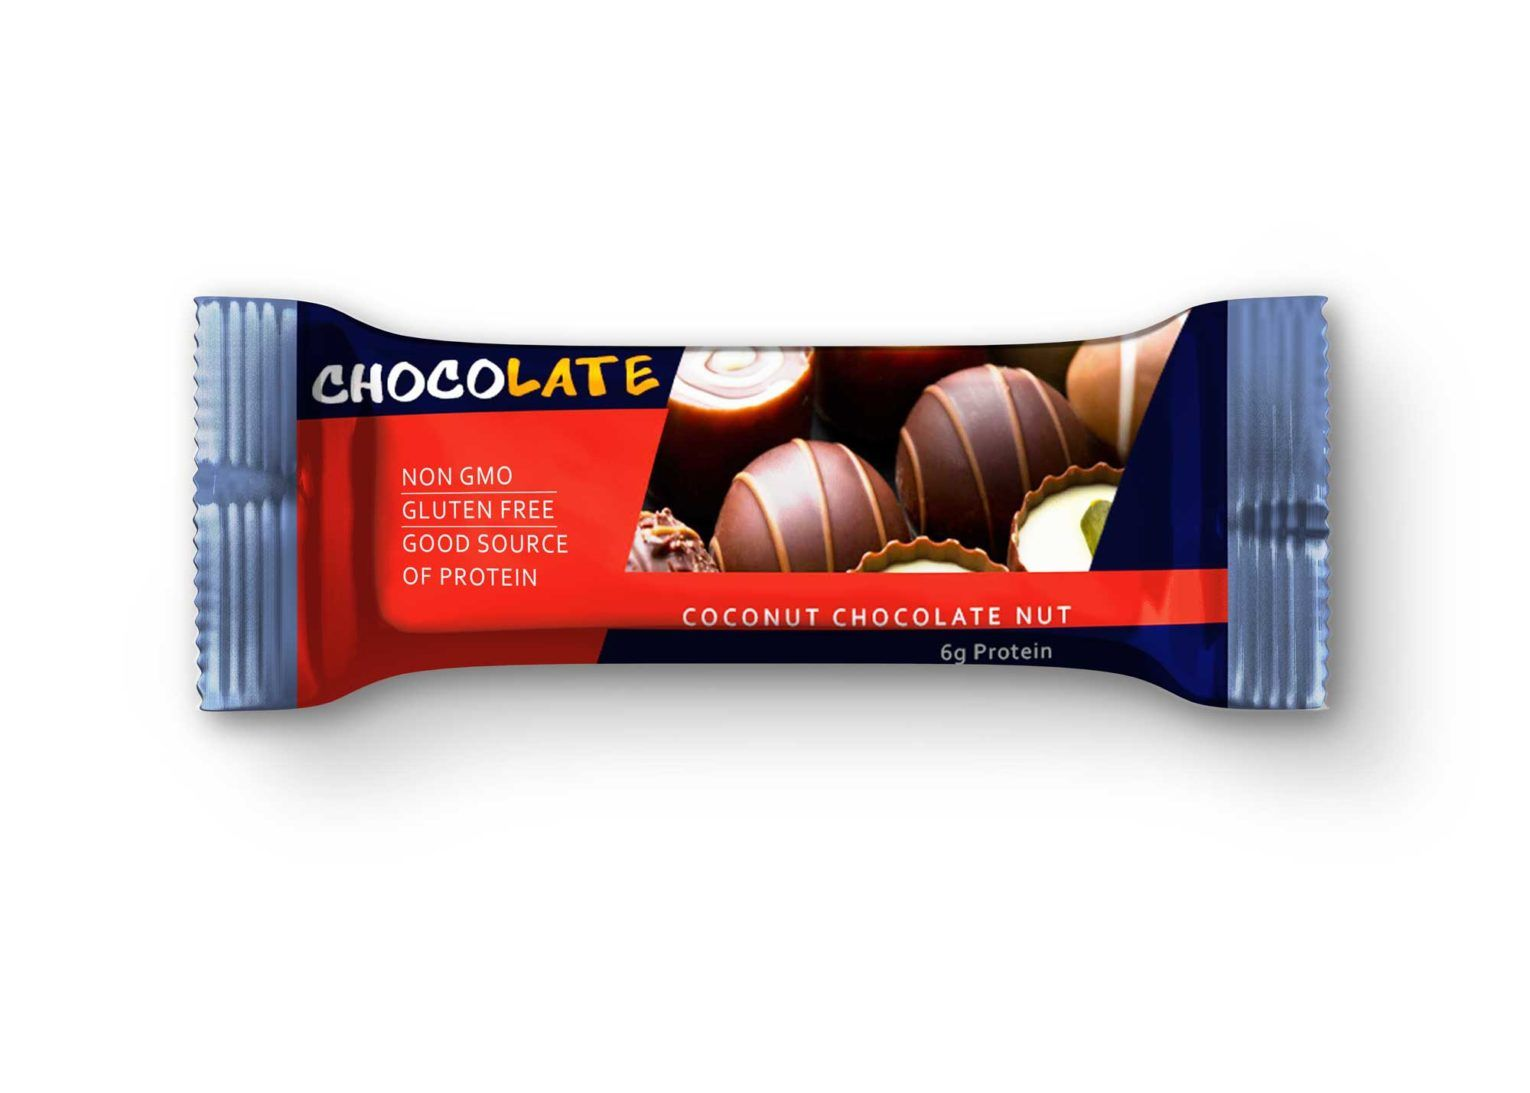 Eye Catchy Chocolate Packet Design Psd Mockup The Primary Goal Of A Packaging Design Is To Drive Custo Packaging Labels Packaging Packaging Design Inspiration